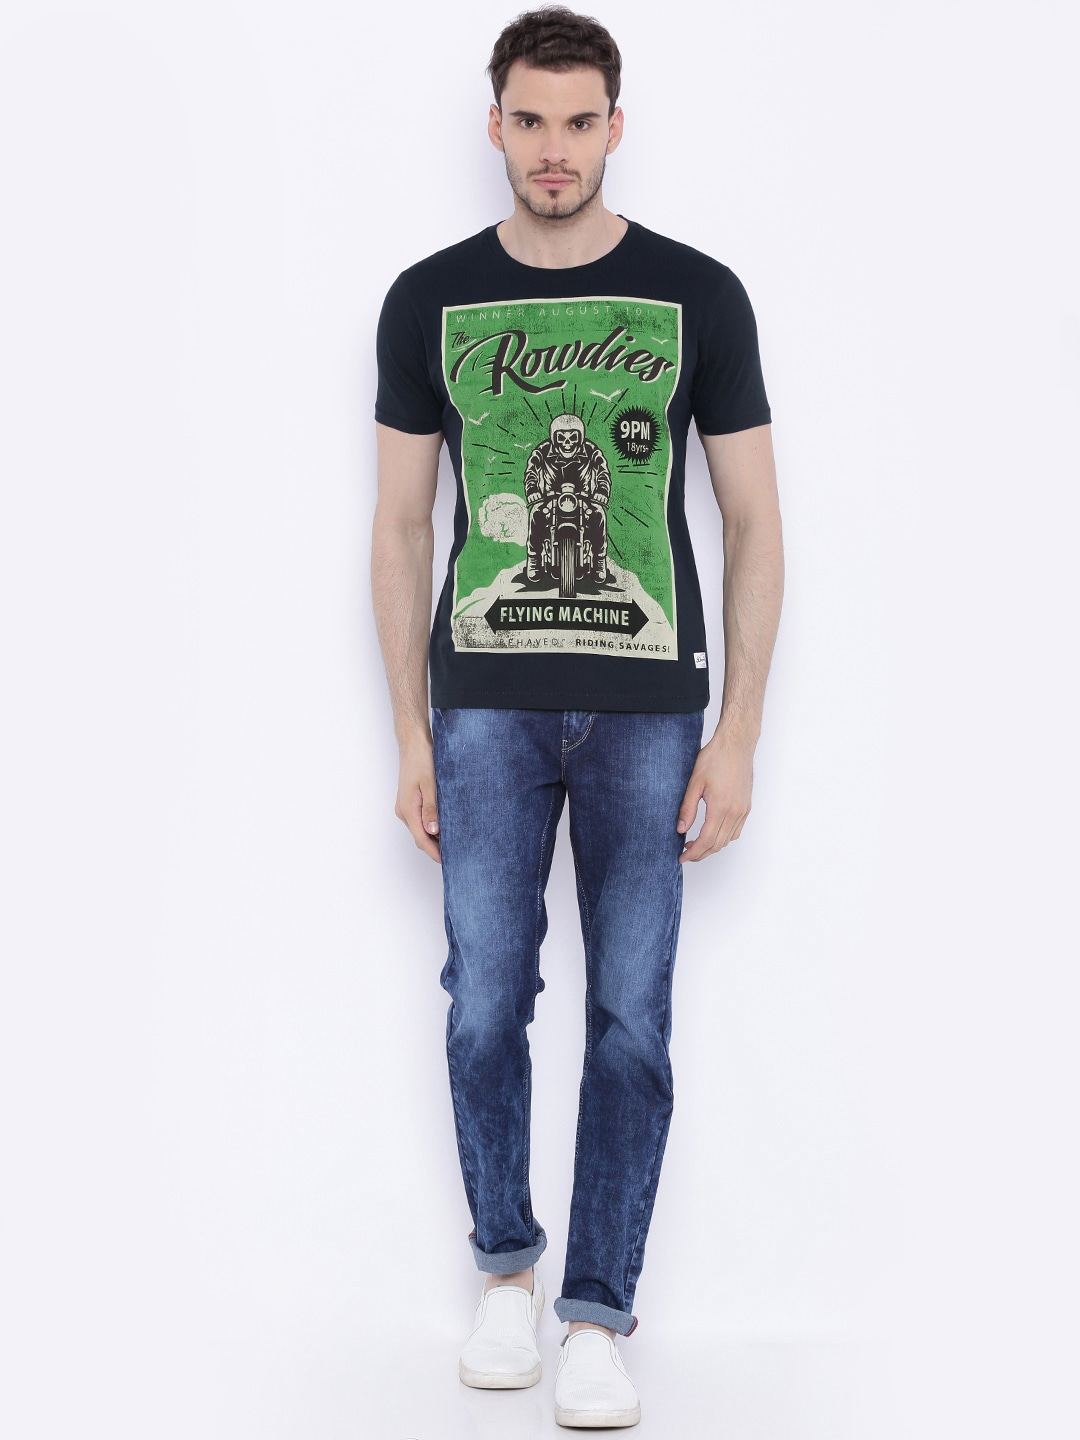 Black t shirt blue jeans - Flying Machine T Shirts Buy Flying Machine T Shirts For Men Women Online In India At Best Price